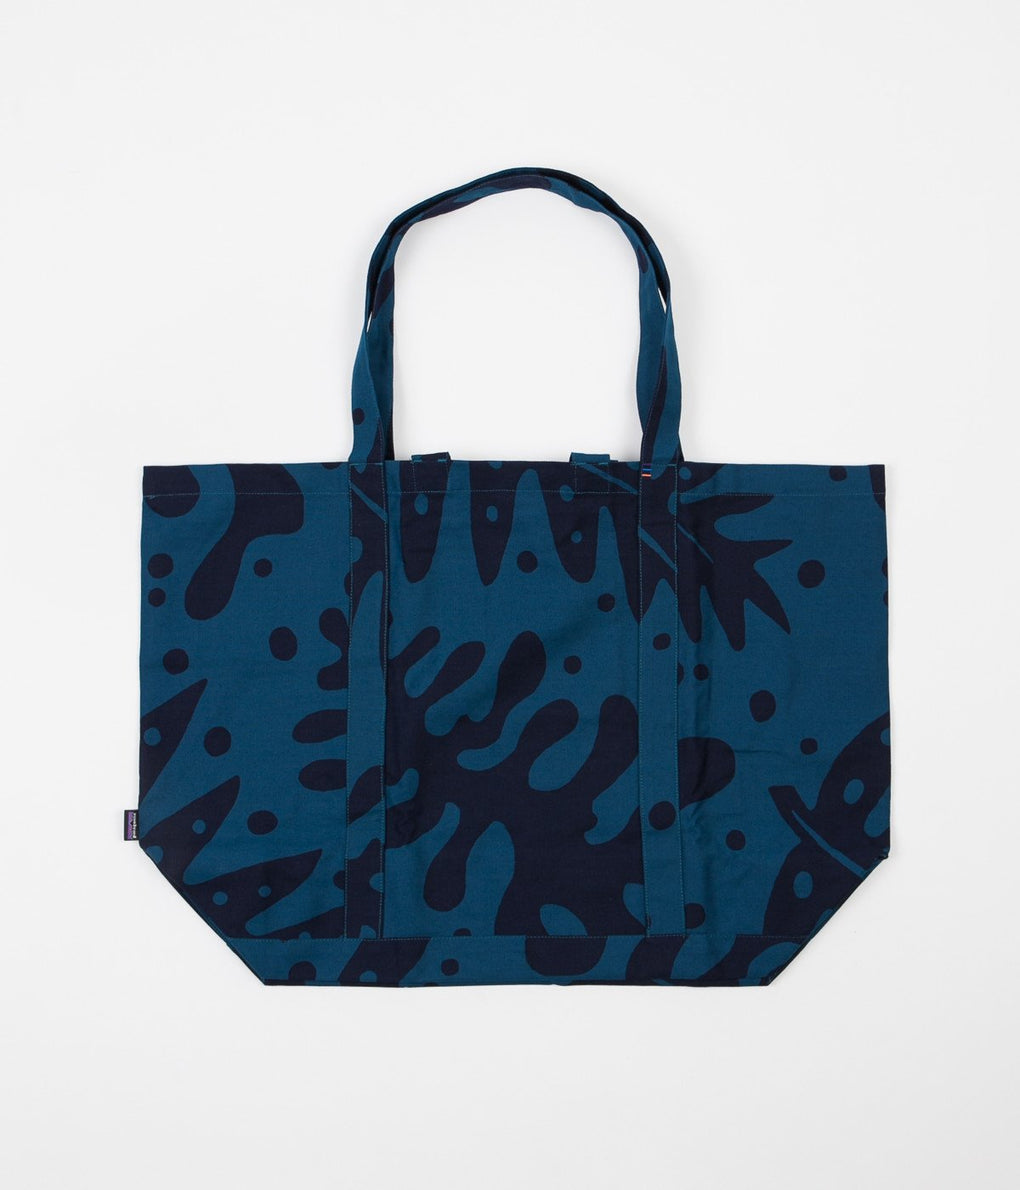 Patagonia All Day Tote Bag - Ferns / Big Sur Blue